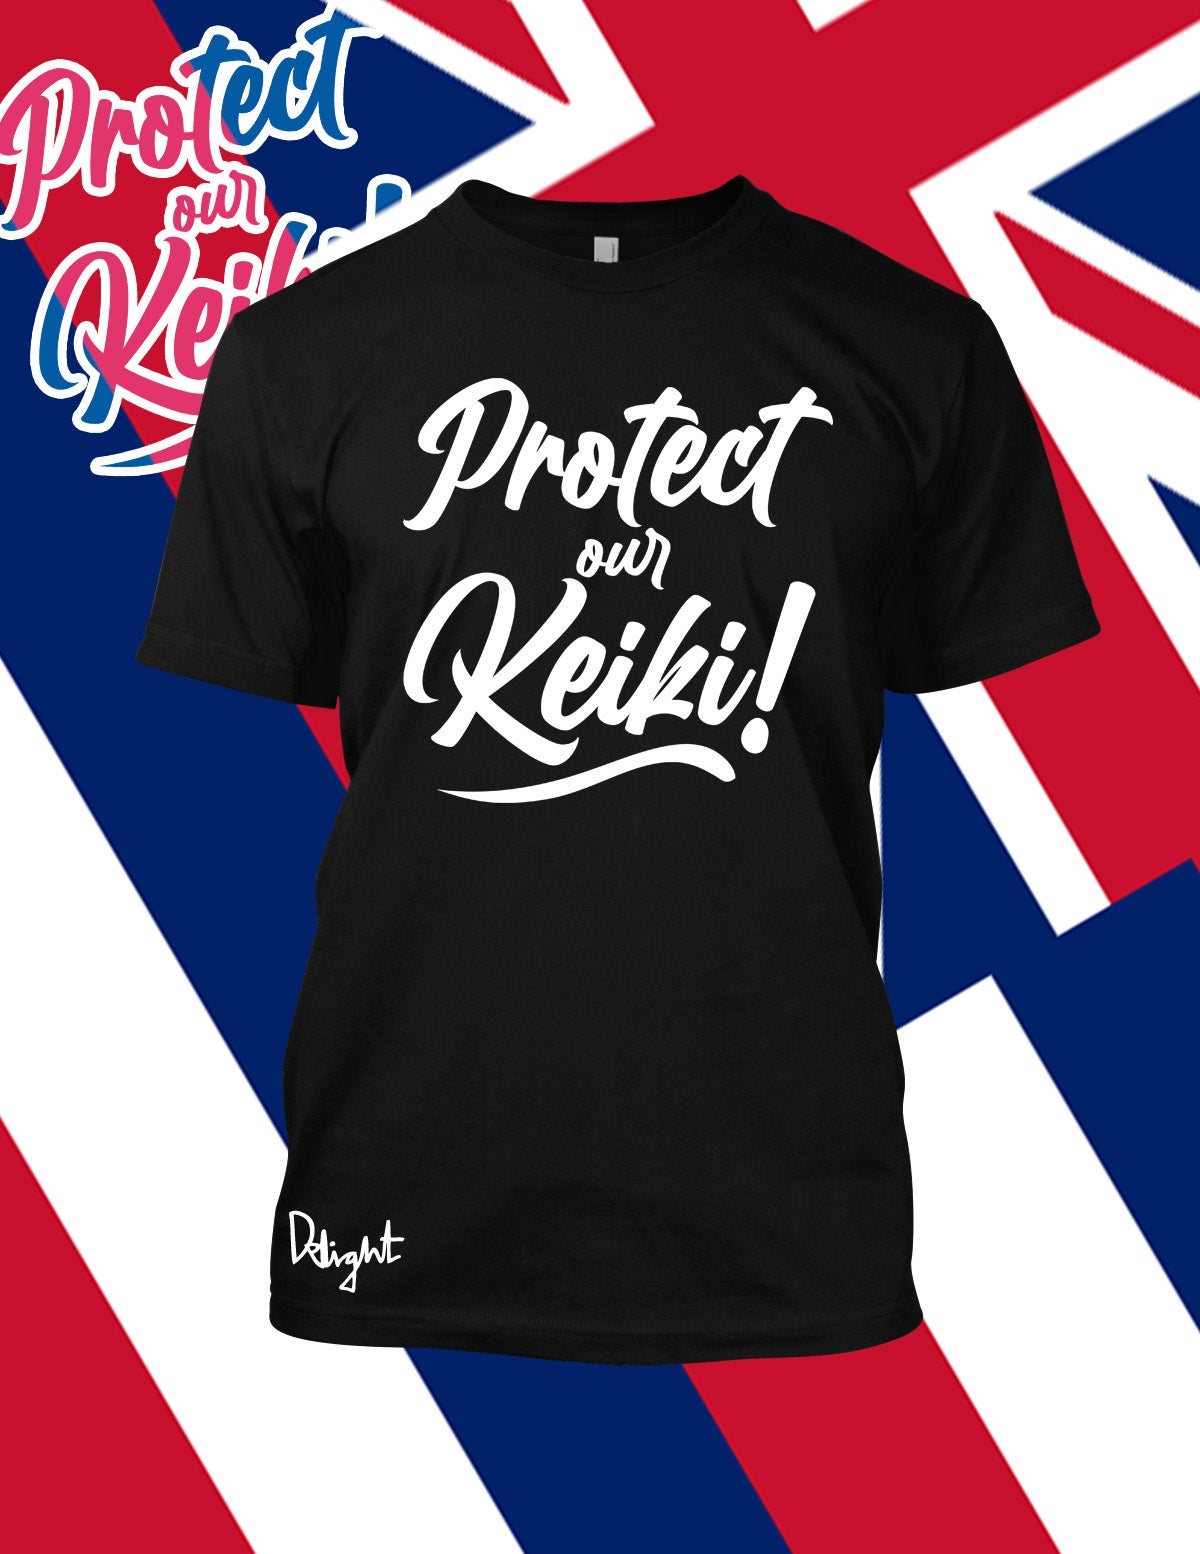 Protect Our Keiki! Black t-shirt (Youth and Adult sizes)